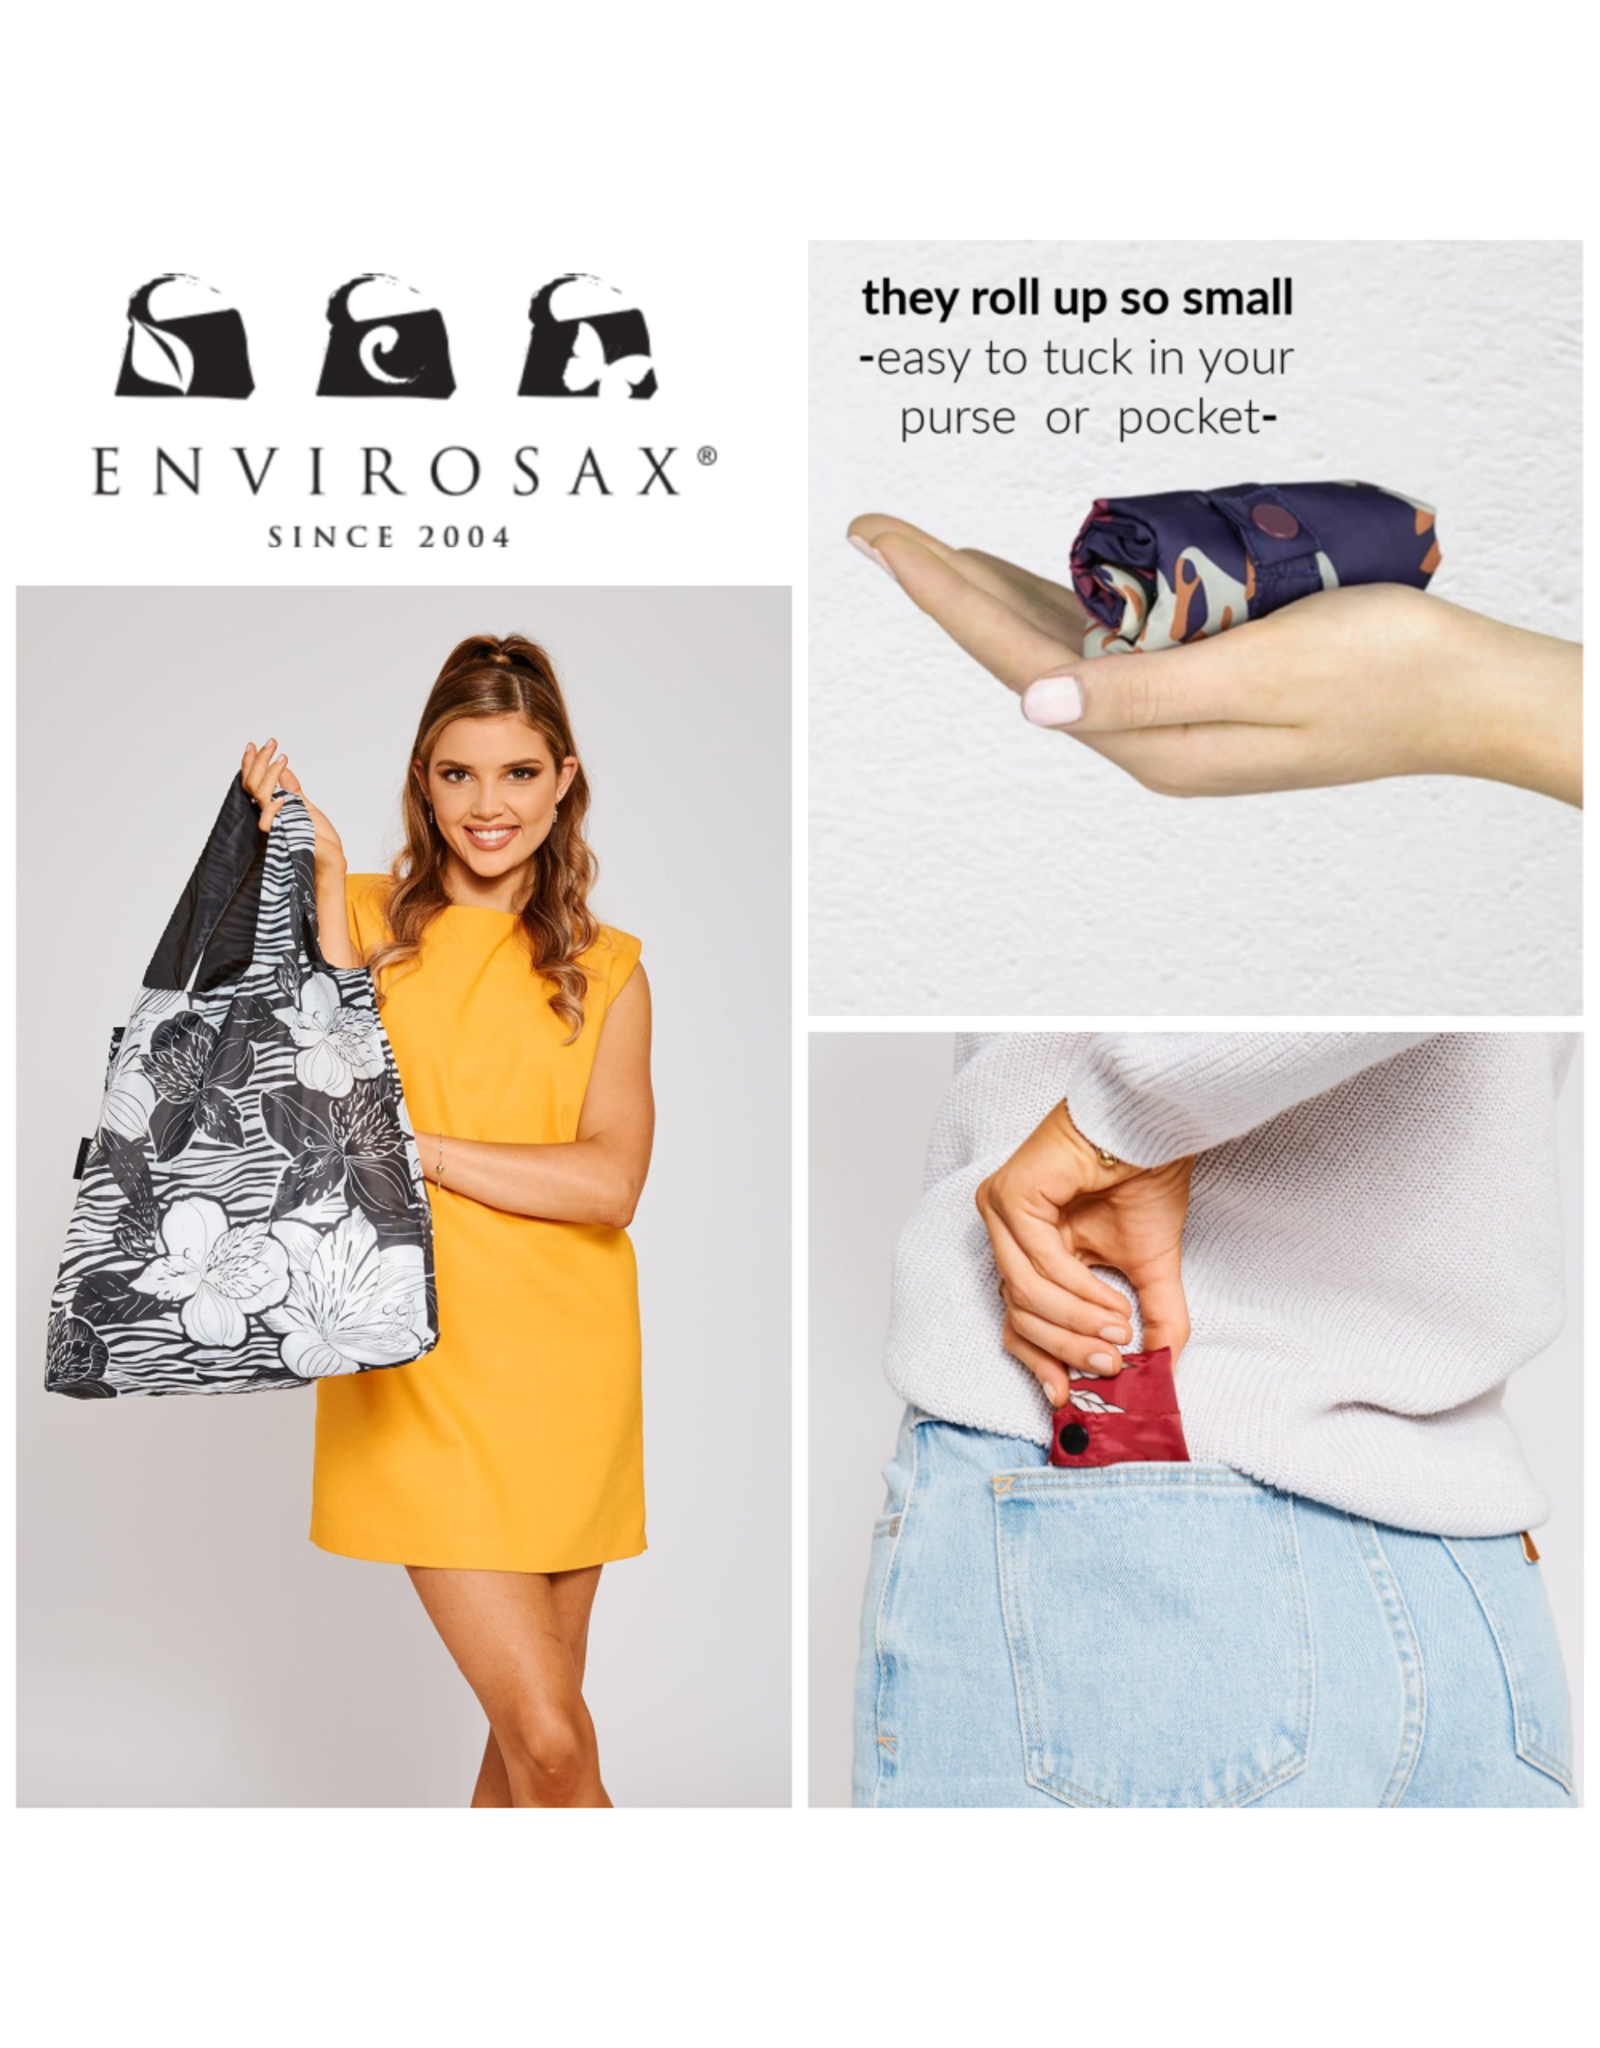 Envirosax Palm Springs - Pocket Sized Reusuable Bag from Envirosax